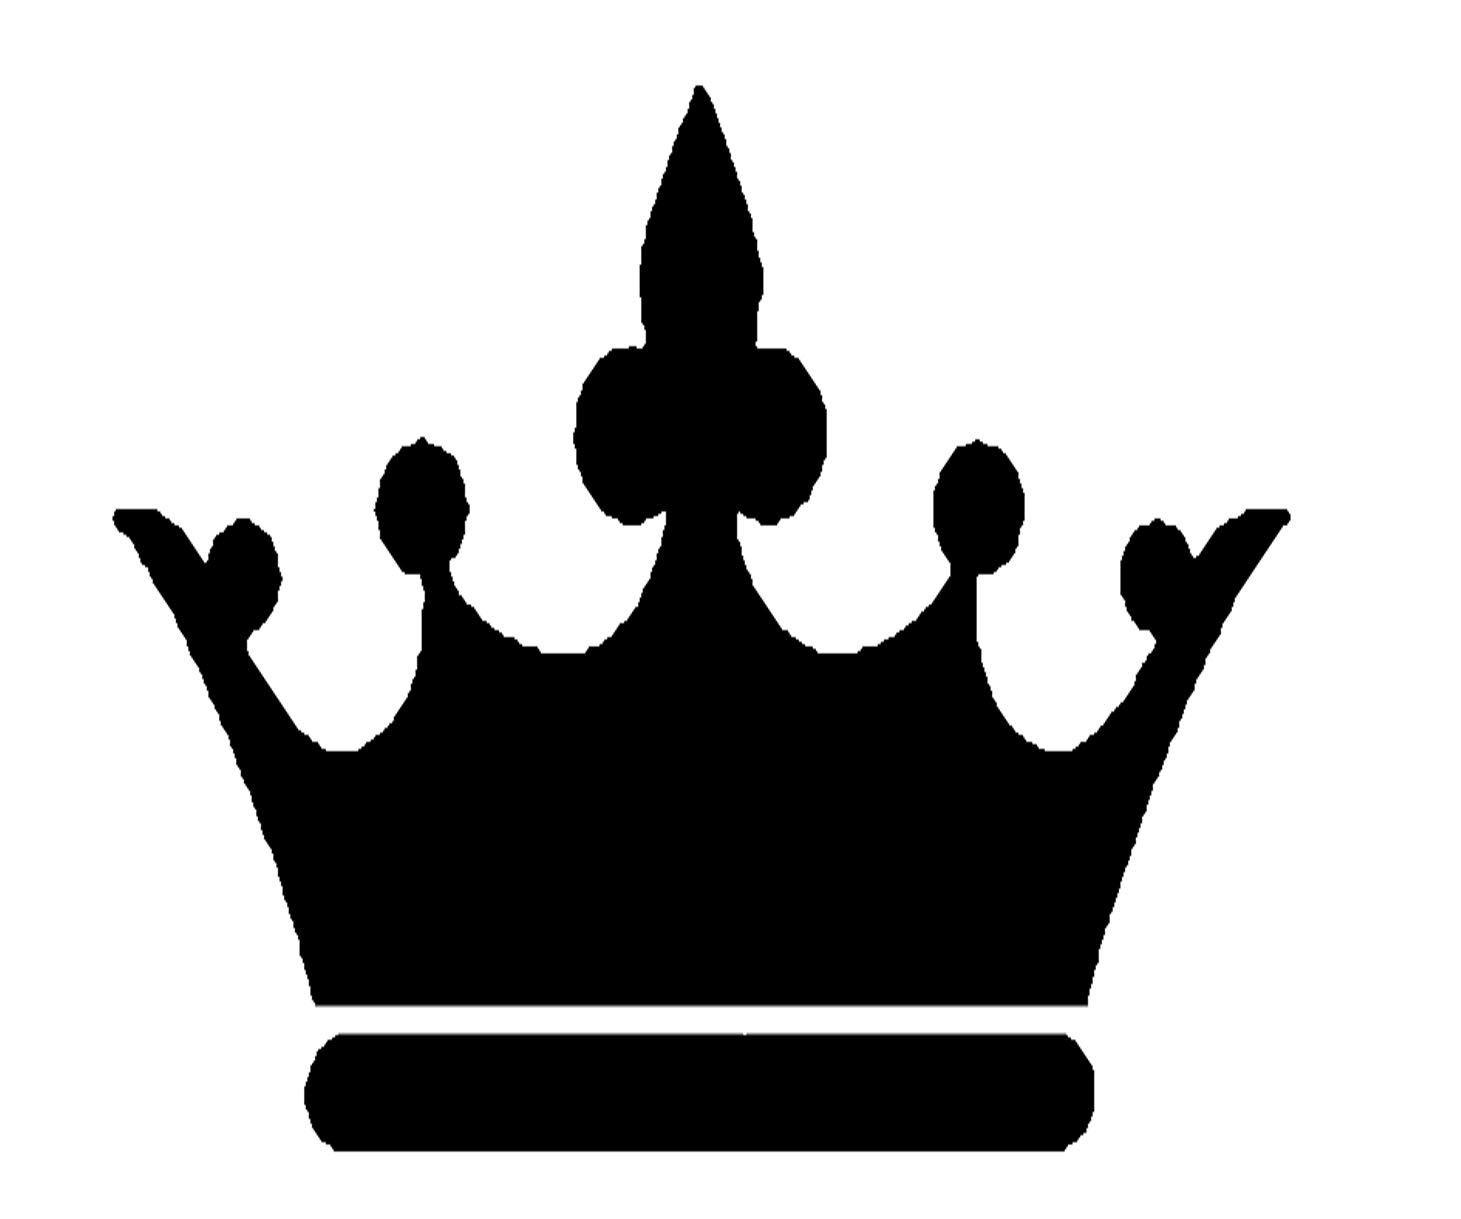 12 Simple Crown Clipart Free Cliparts Th-12 Simple Crown Clipart Free Cliparts That You Can Download To You-1